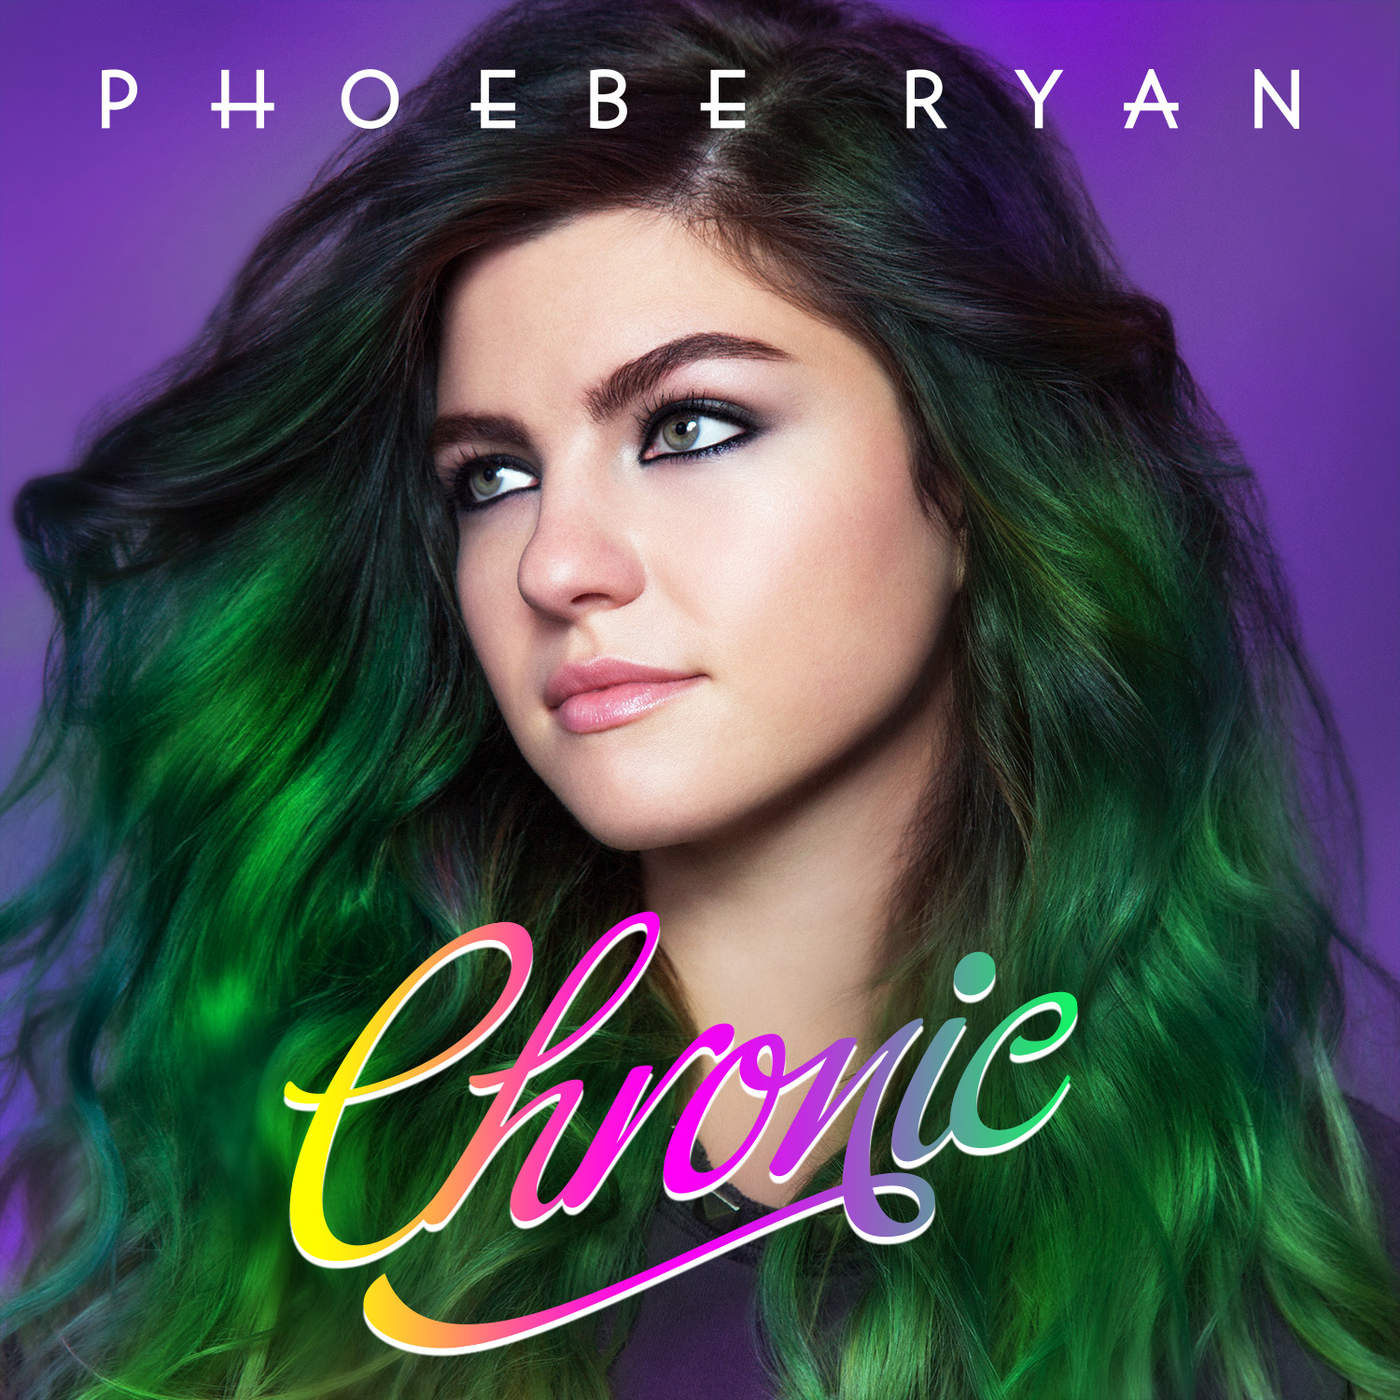 Phoebe Ryan - Chronic - Single Cover